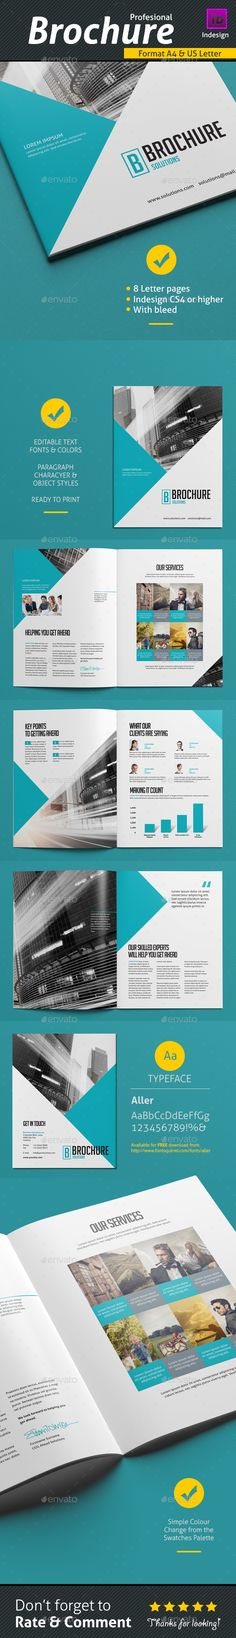 Brochure Template InDesign INDD #design Download: http://graphicriver.net/item/brochure-template-v1/13936599?ref=ksioks